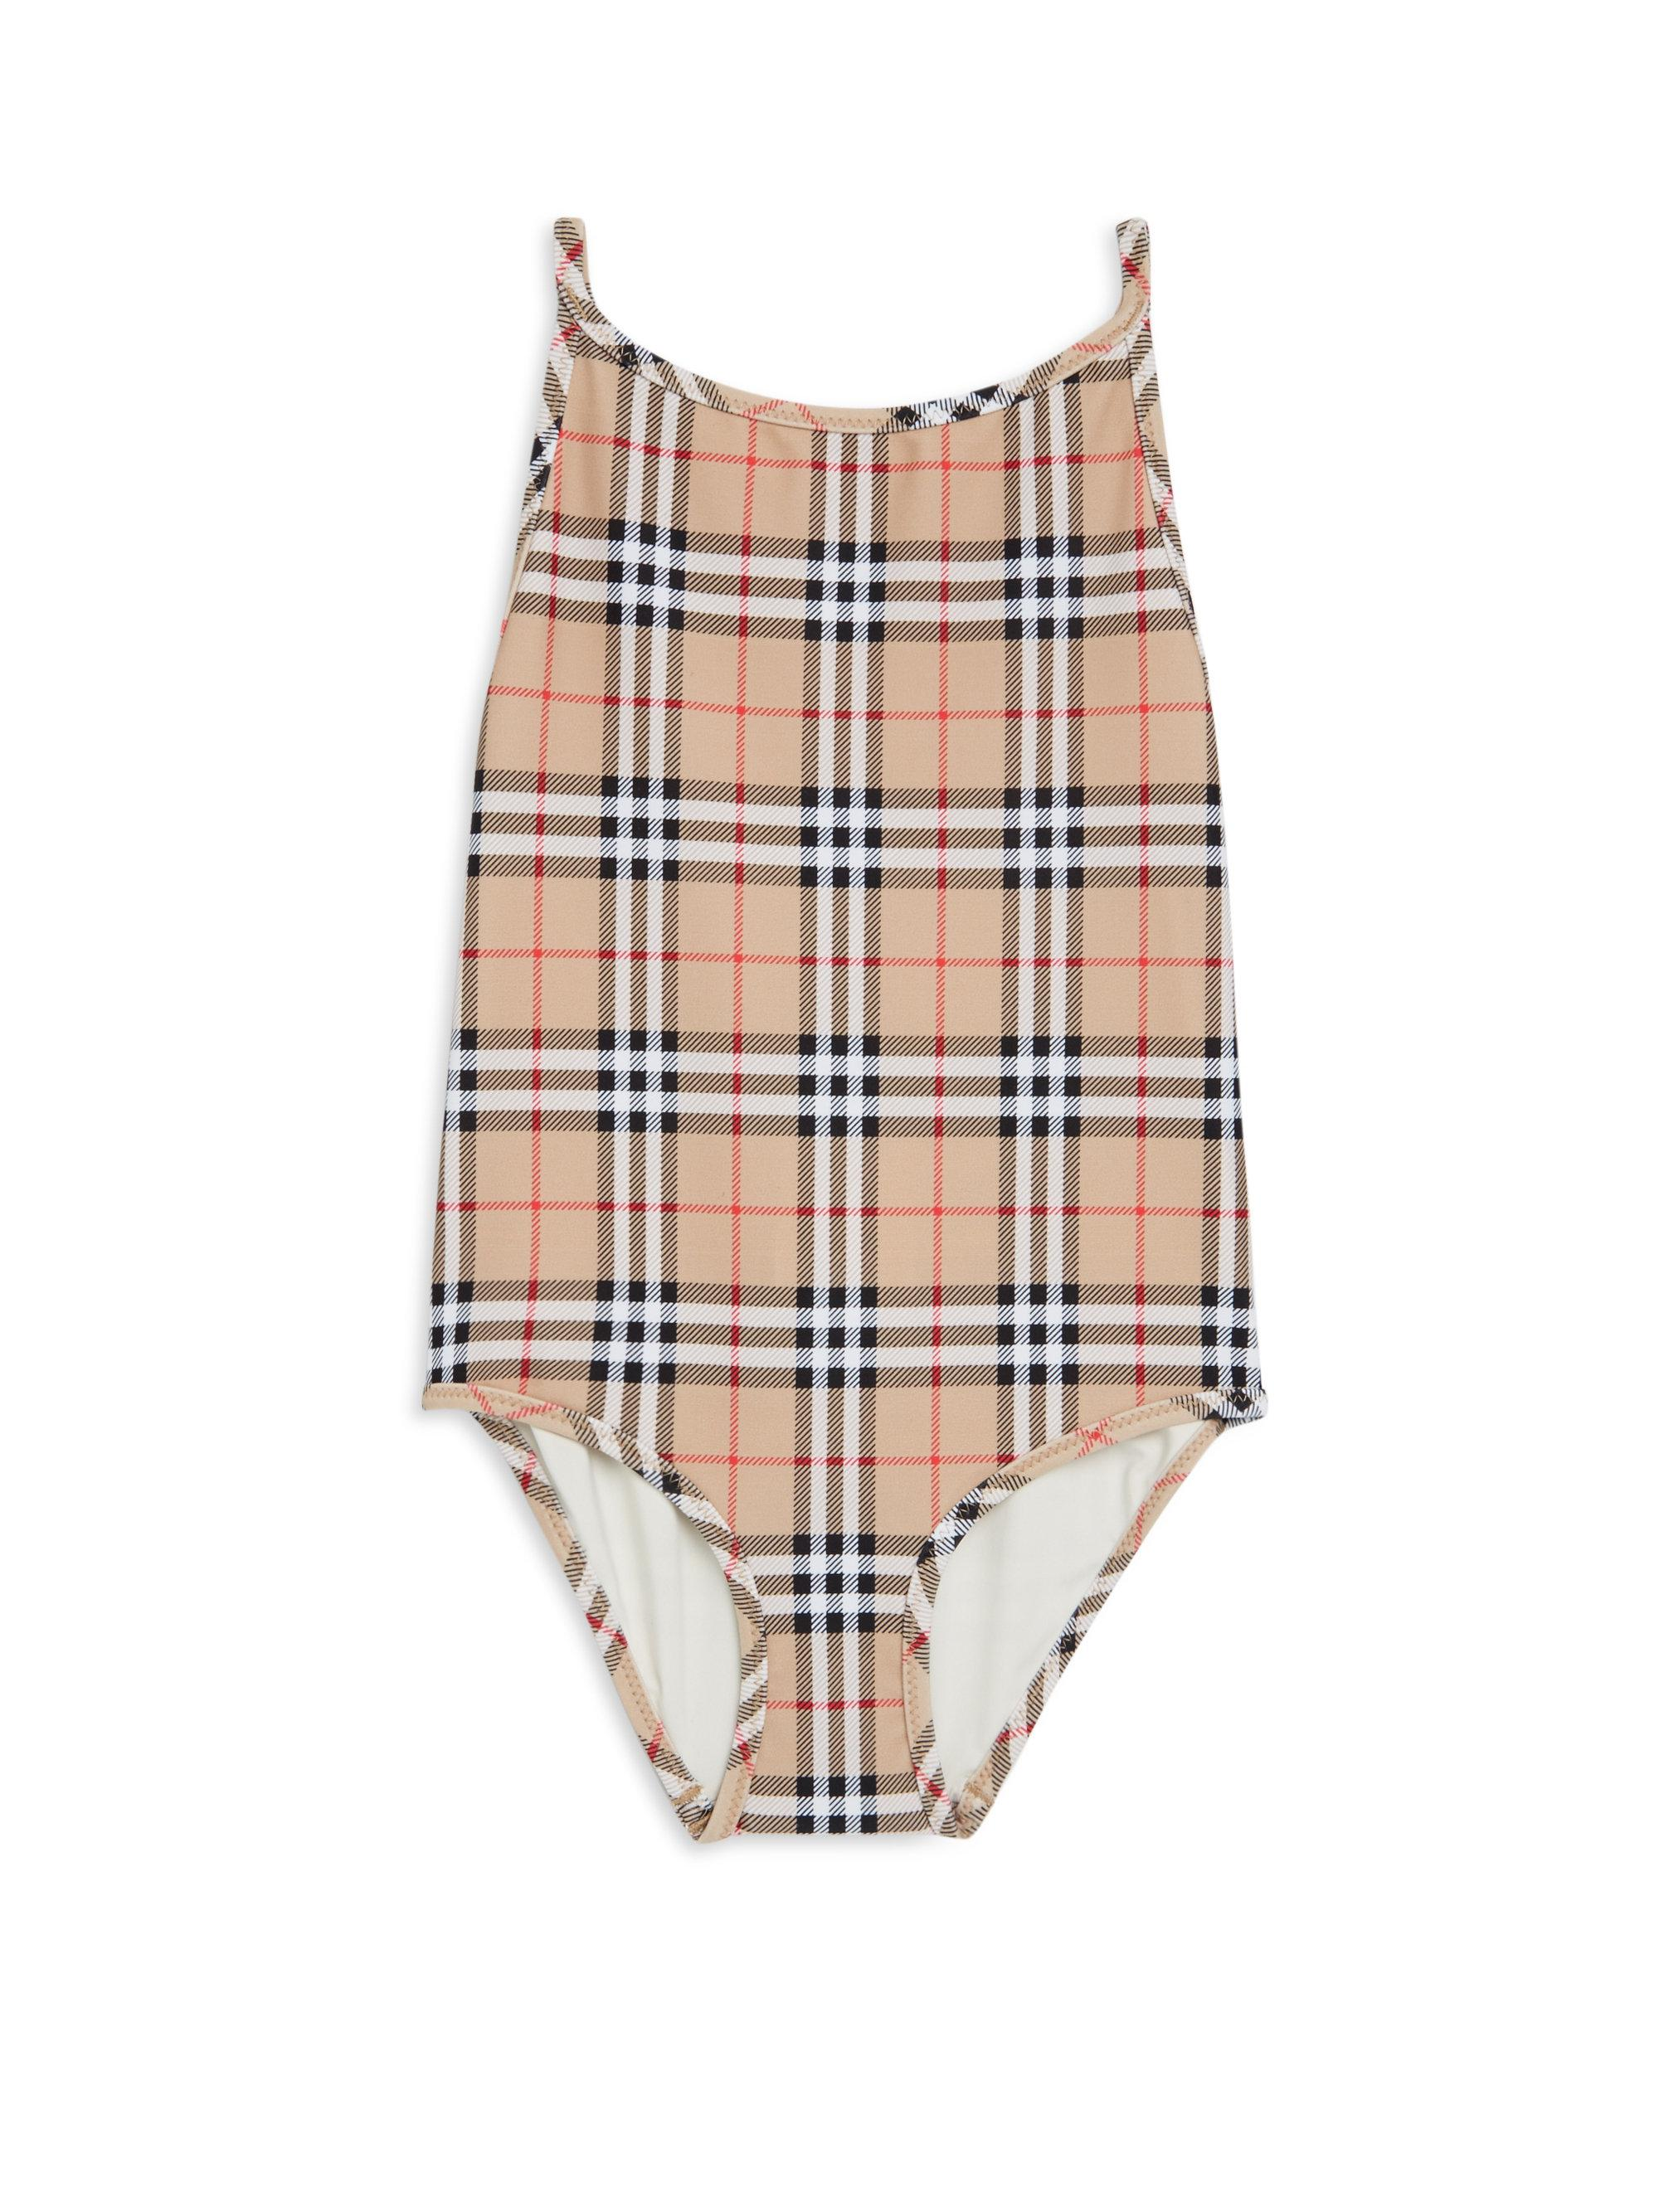 b1334eb41c Burberry Little Girl's & Girl's One-piece Sandie Check Swimsuit - Lyst